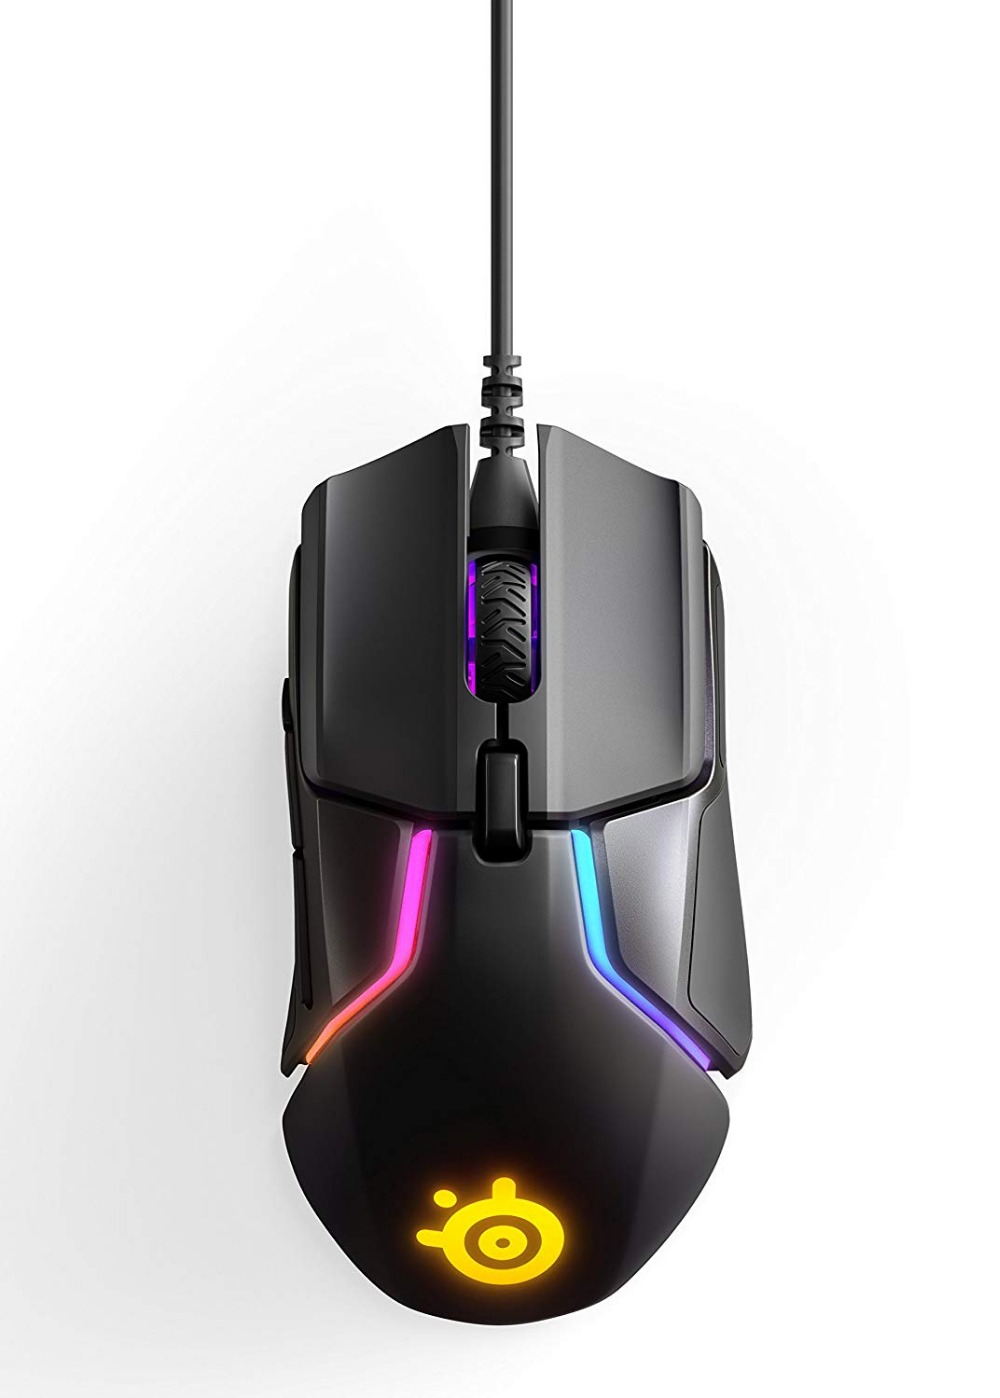 SteelSeries Rival 600 Gaming Mouse - 12,000 CPI TrueMove3+ Dual Optical Sensor - 0.5 Lift-off Distance